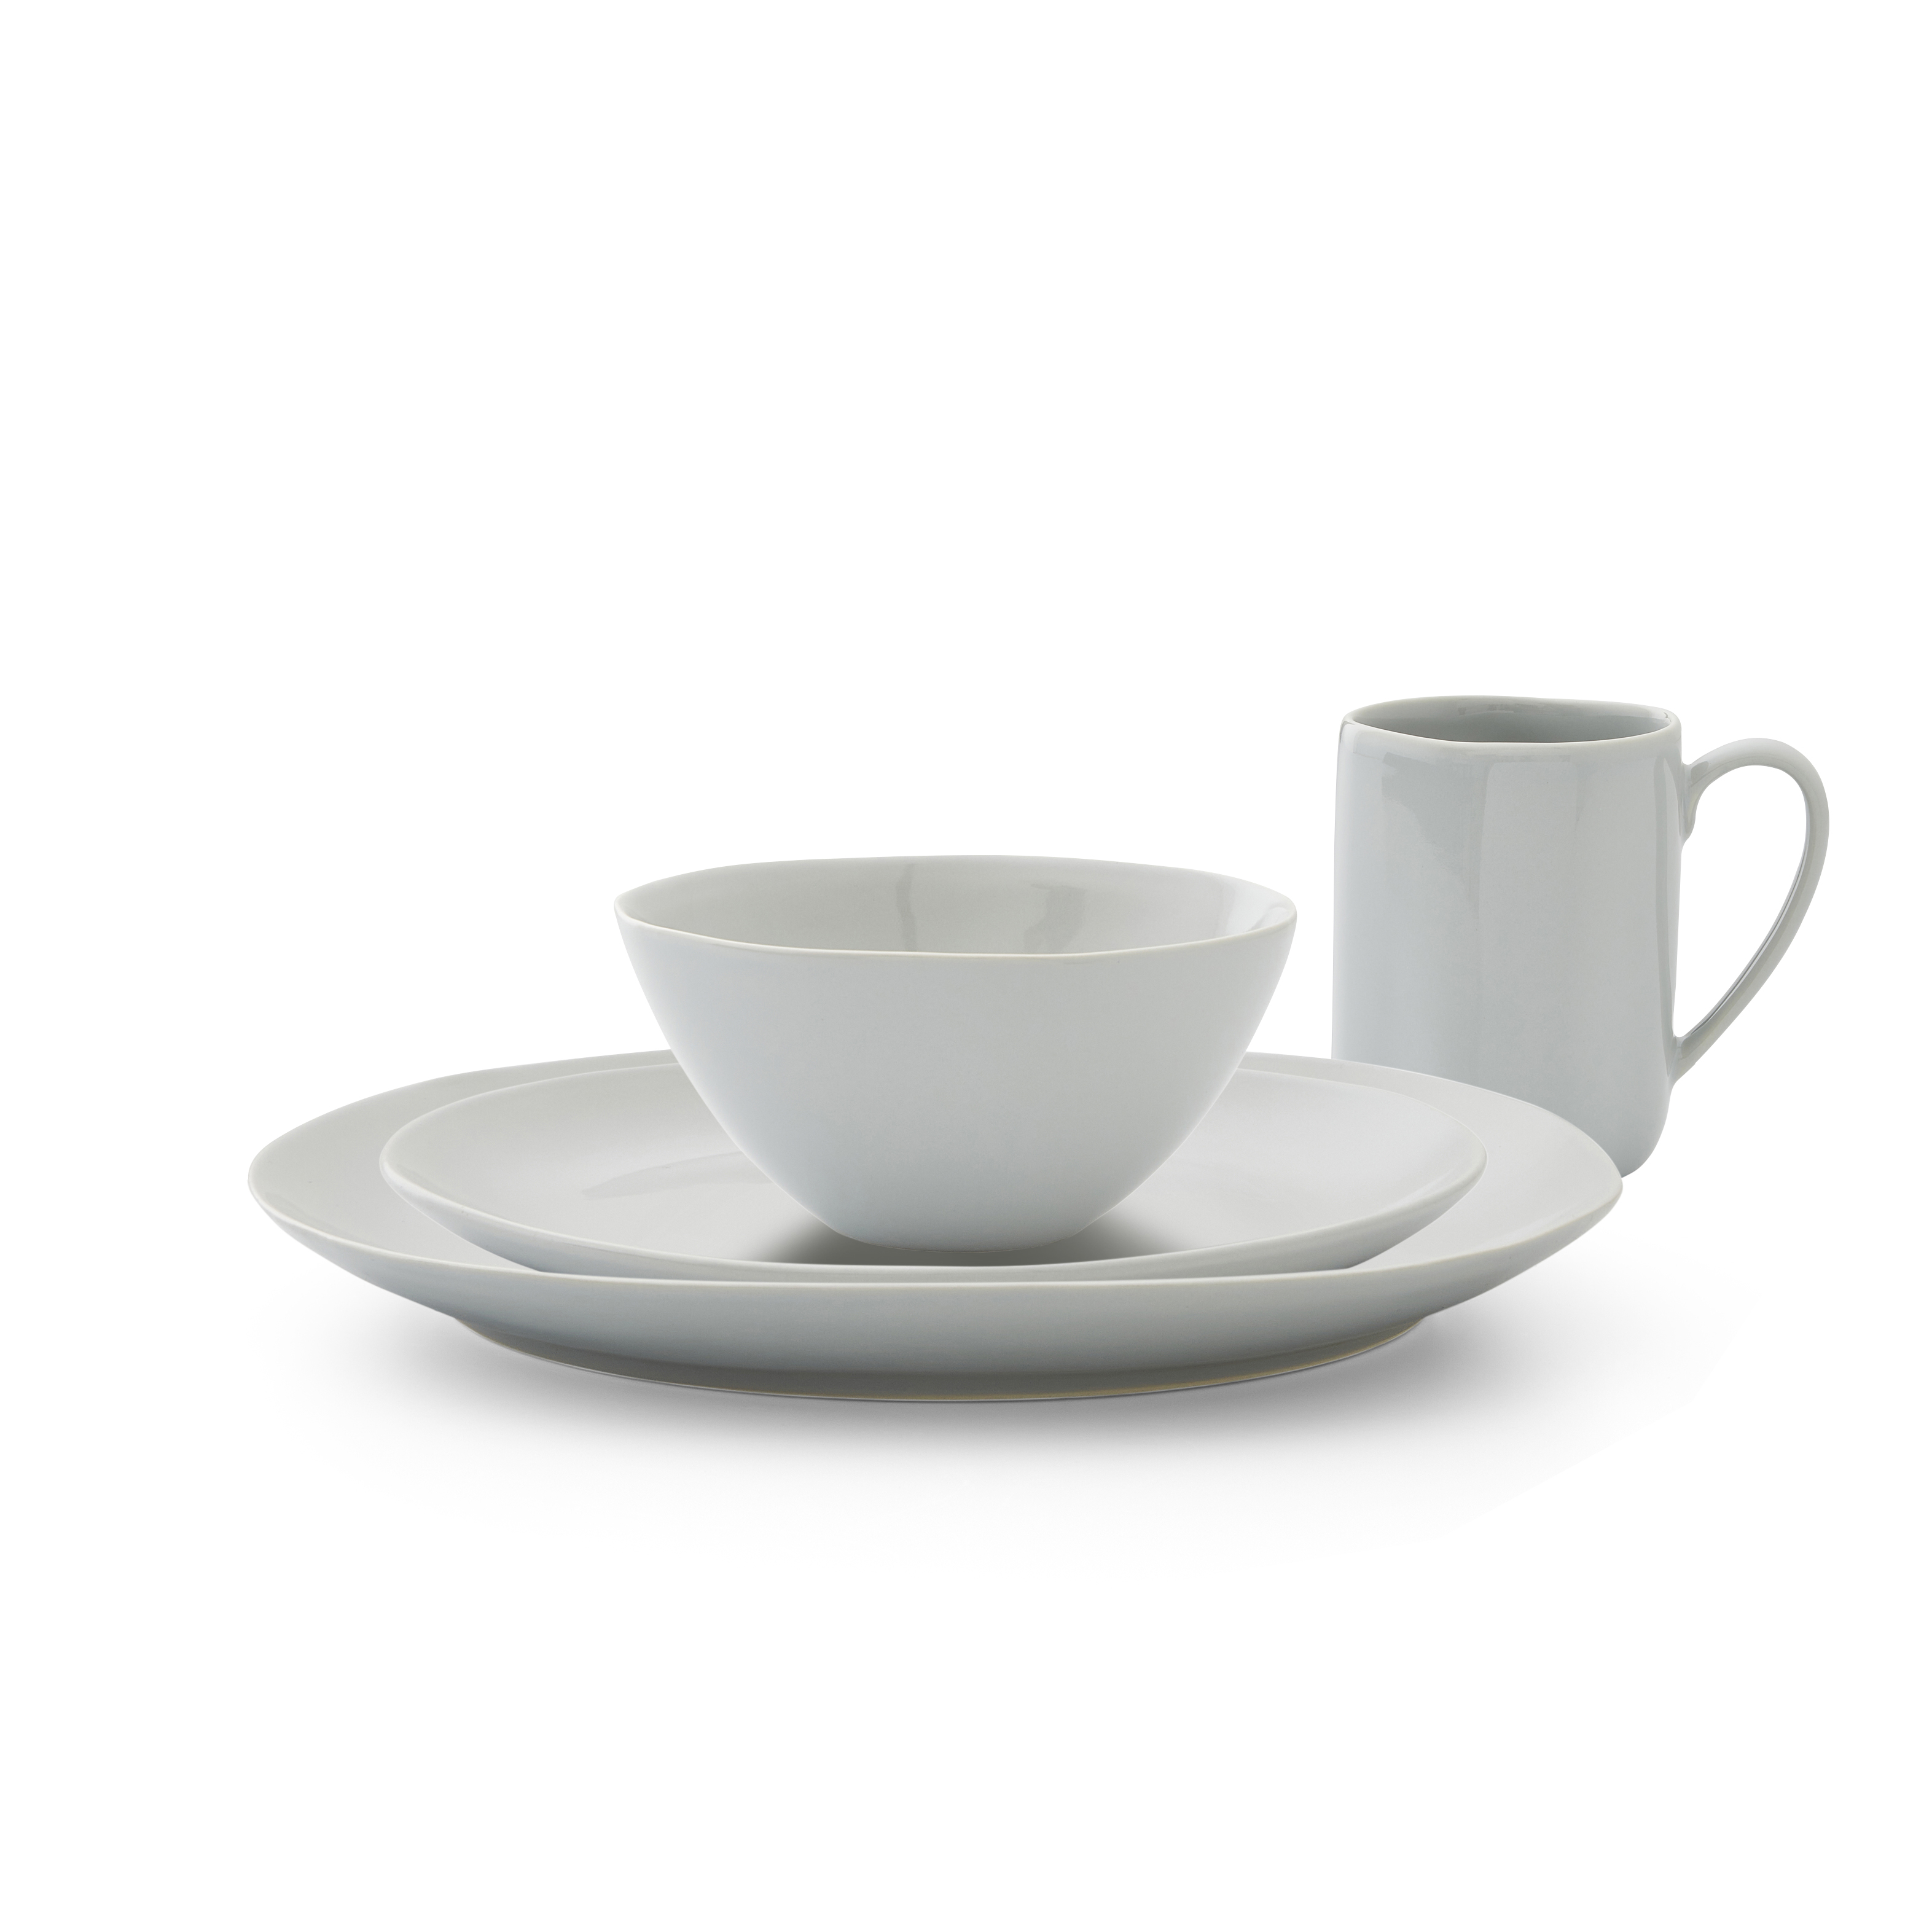 Sophie Conran Arbor 4 Piece Place Setting- Dove Grey image number 0